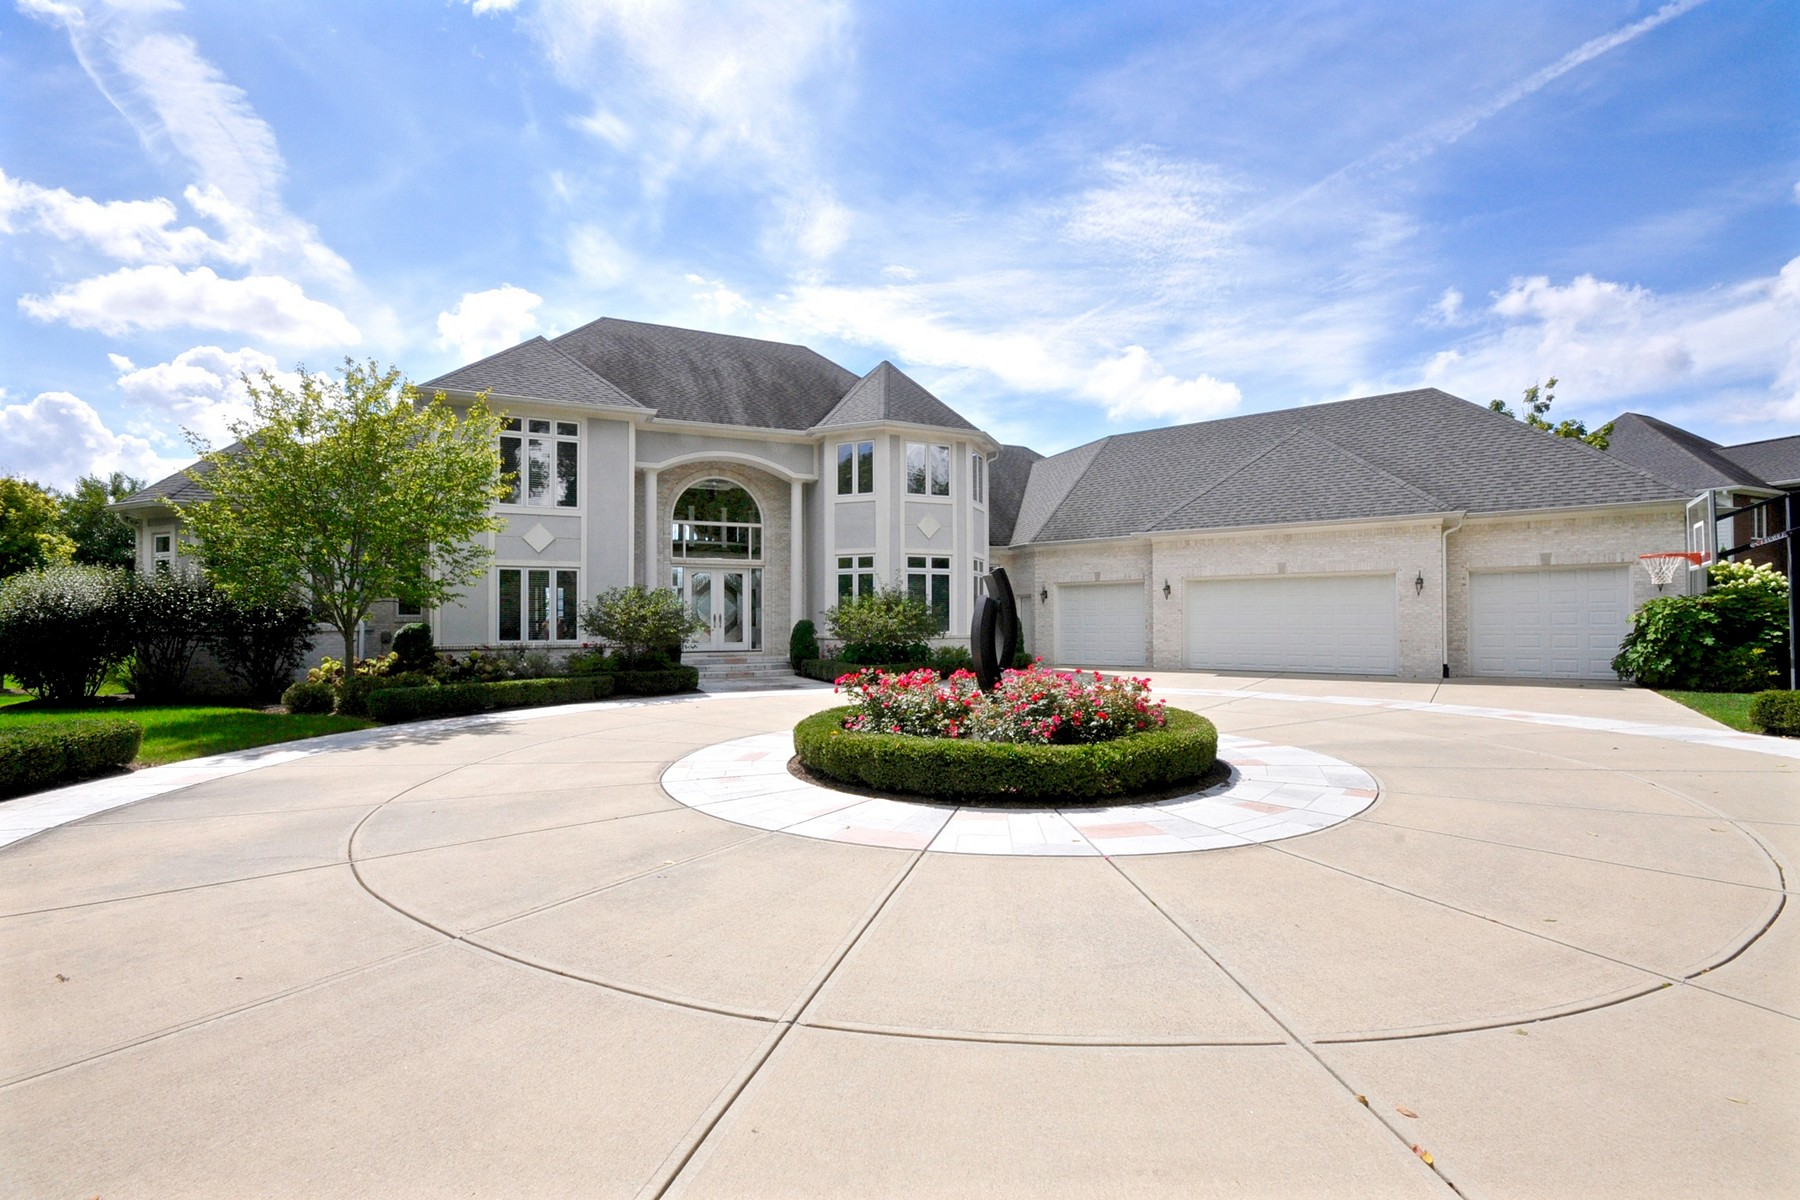 Single Family Home for Sale at Private One Acre Estate 15149 Geist Ridge Drive Fishers, Indiana, 46040 United States